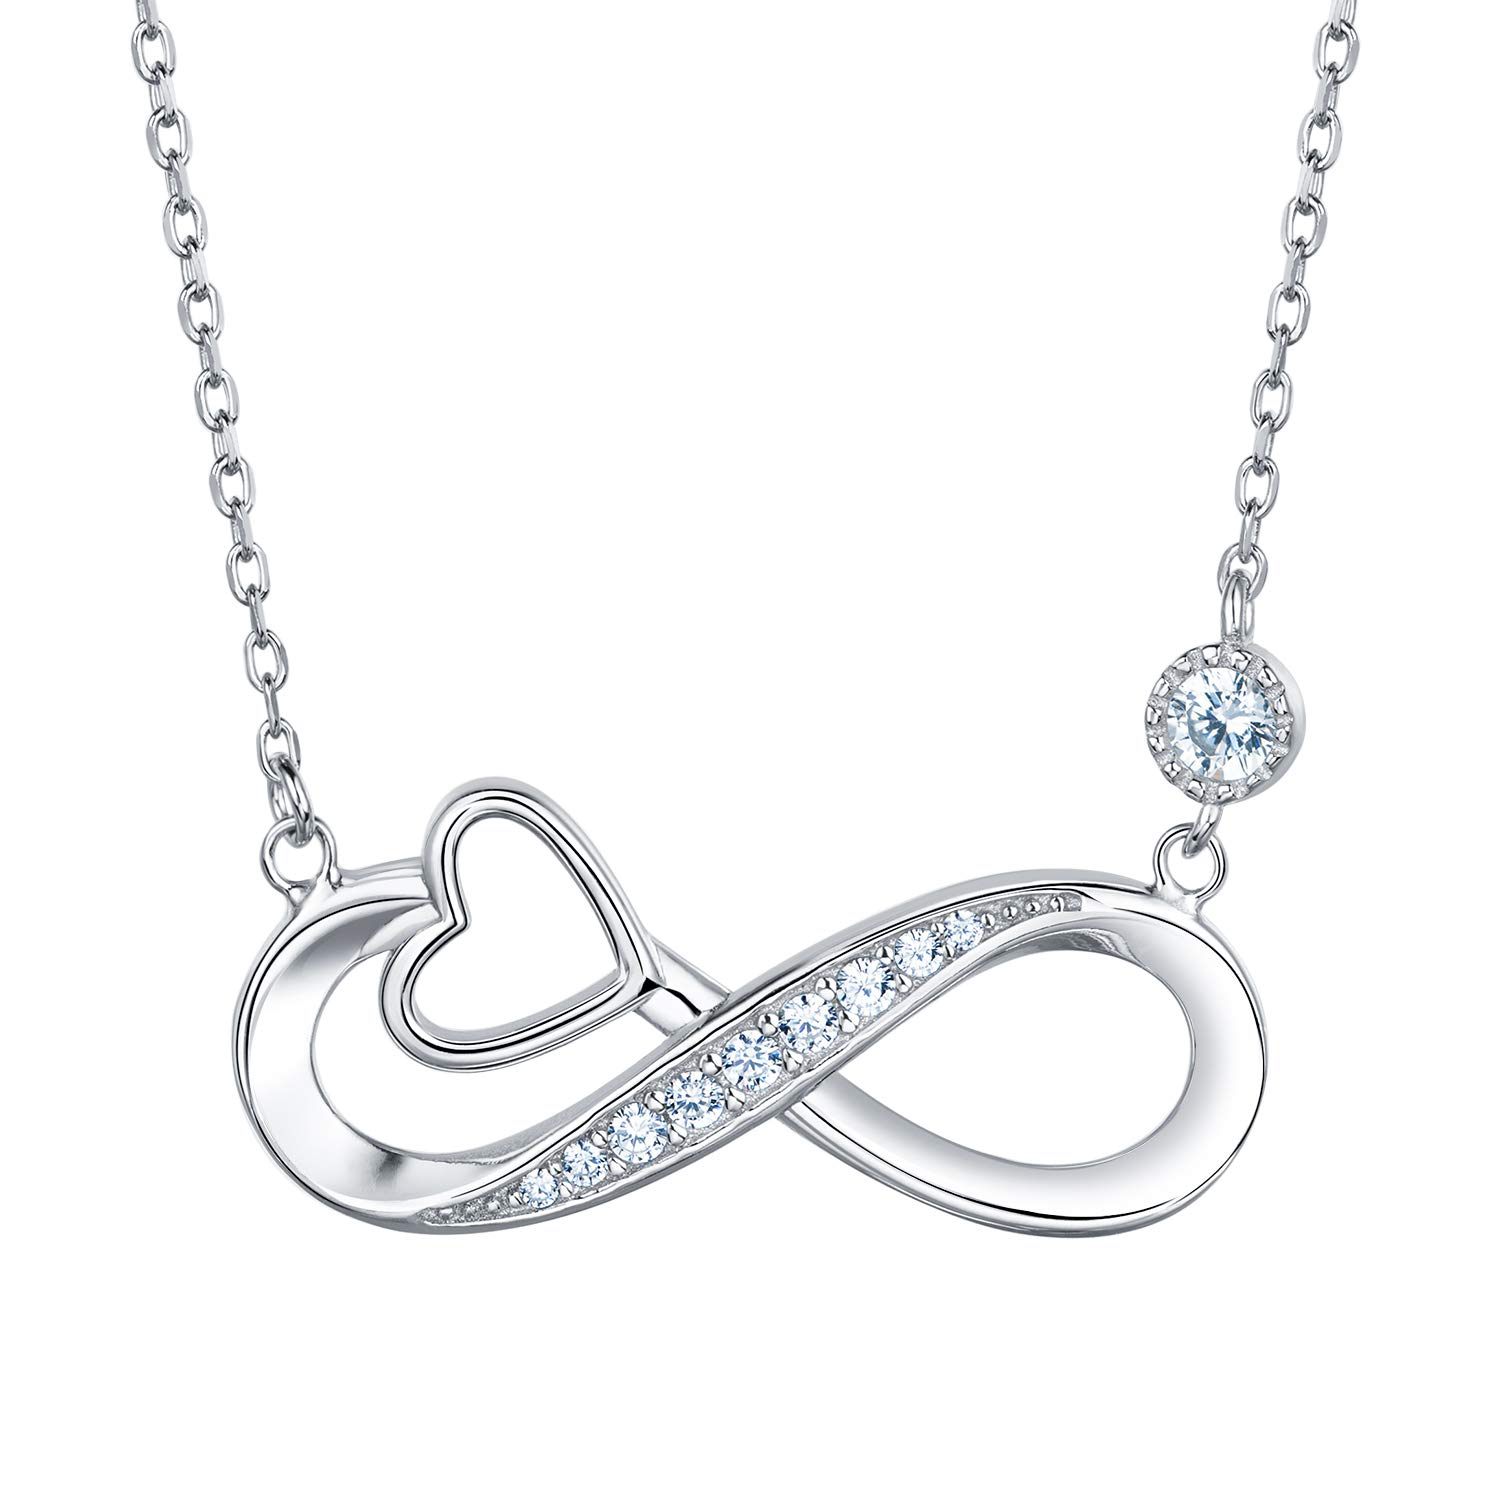 Van Chloe Infinity Heart Necklace for Women 925 Sterling Silver Love Pendant Necklace White Gold Plated CZ Diamond Gift for Women Girls 18'' by Van Chloe